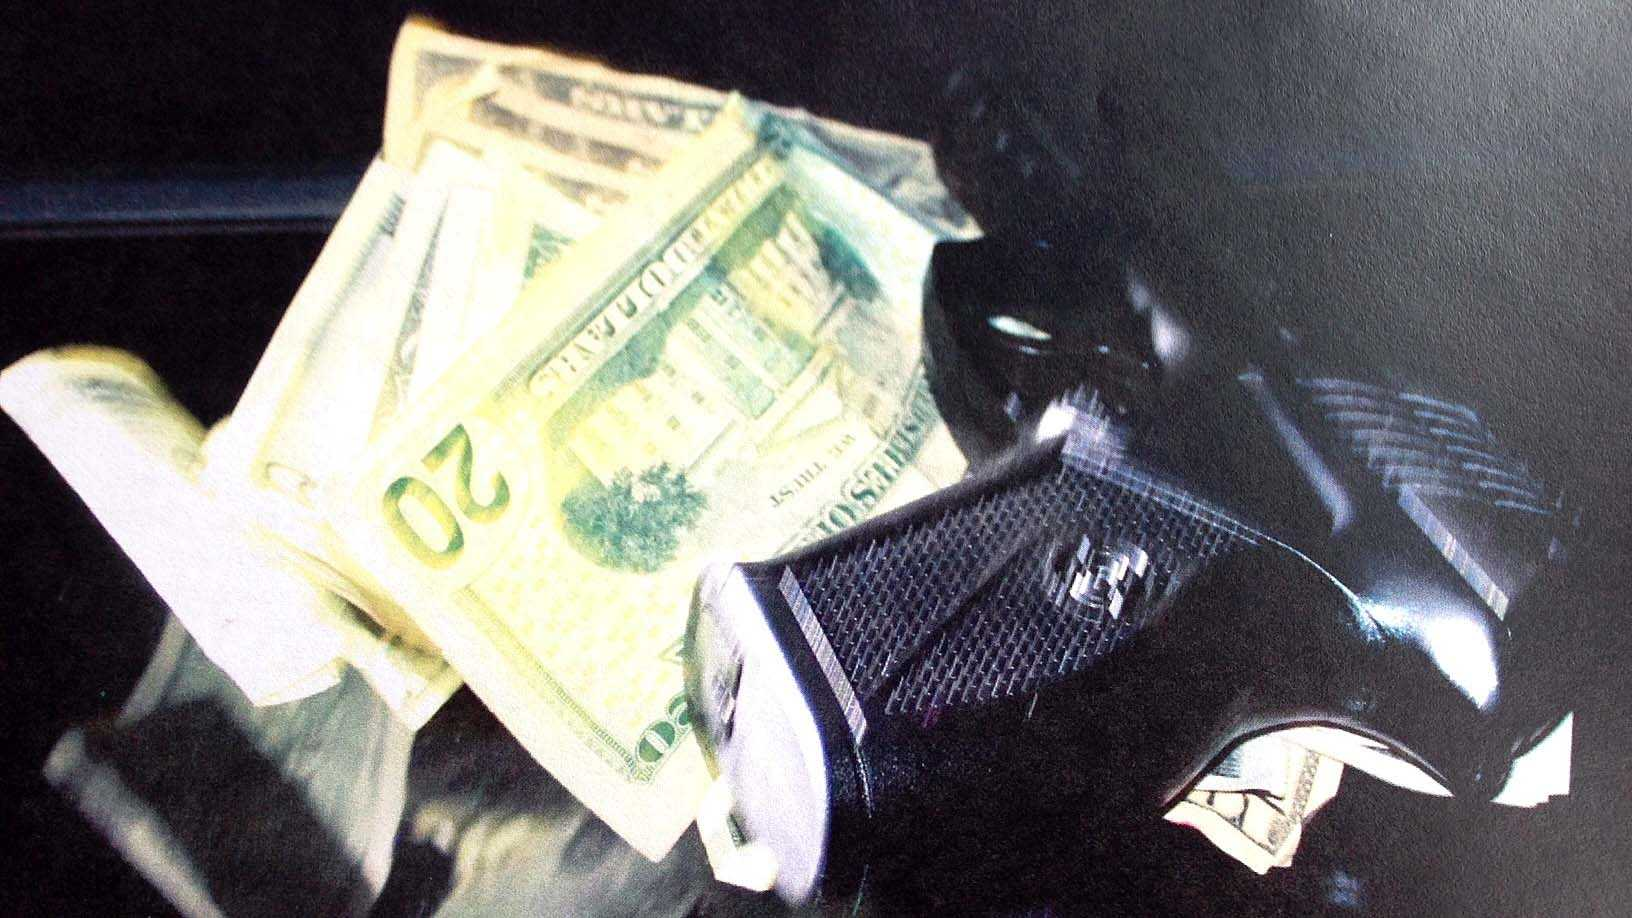 The gun and some cash found in car. The gun turned out to be an Airsoft pistol.